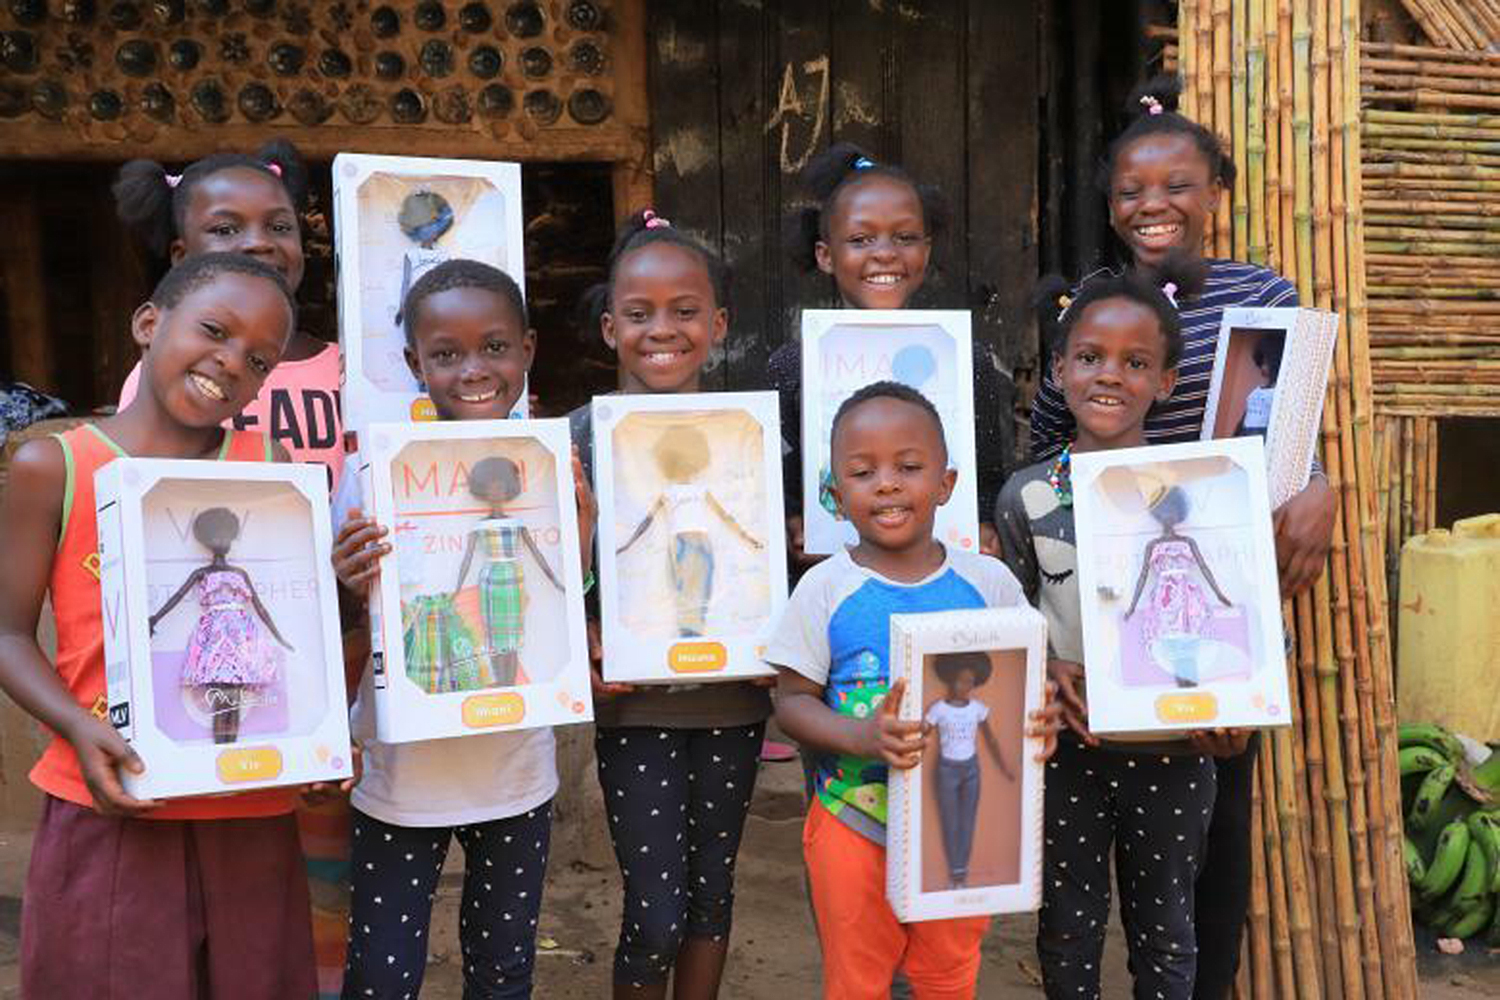 Texas Woman Sends Black Dolls to Orphans in Uganda to Help Show Them 'You Can be the Center of the Story'